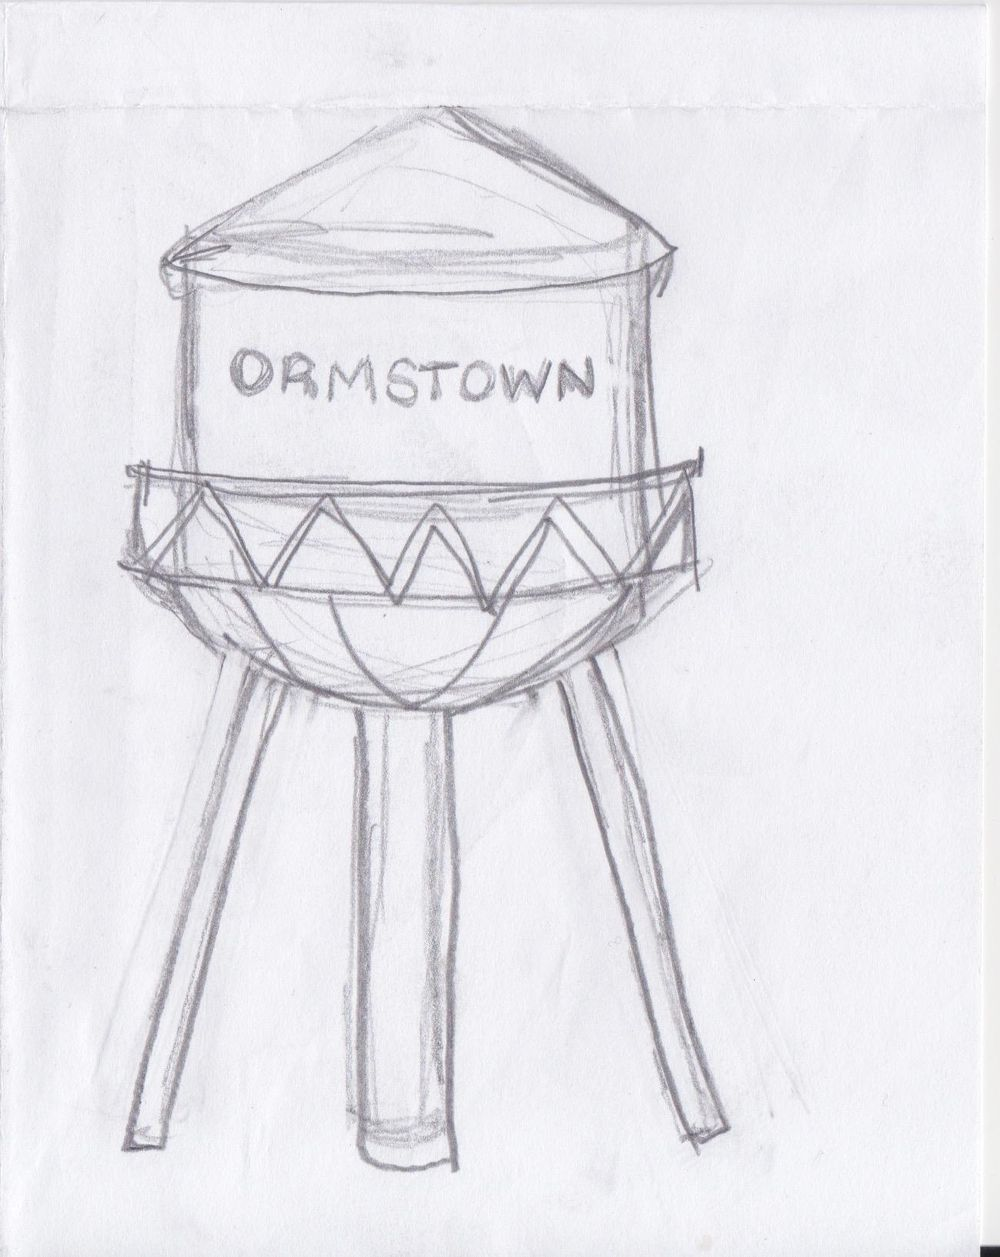 Inky Map - Ormstown, Quebec, Canada - image 3 - student project